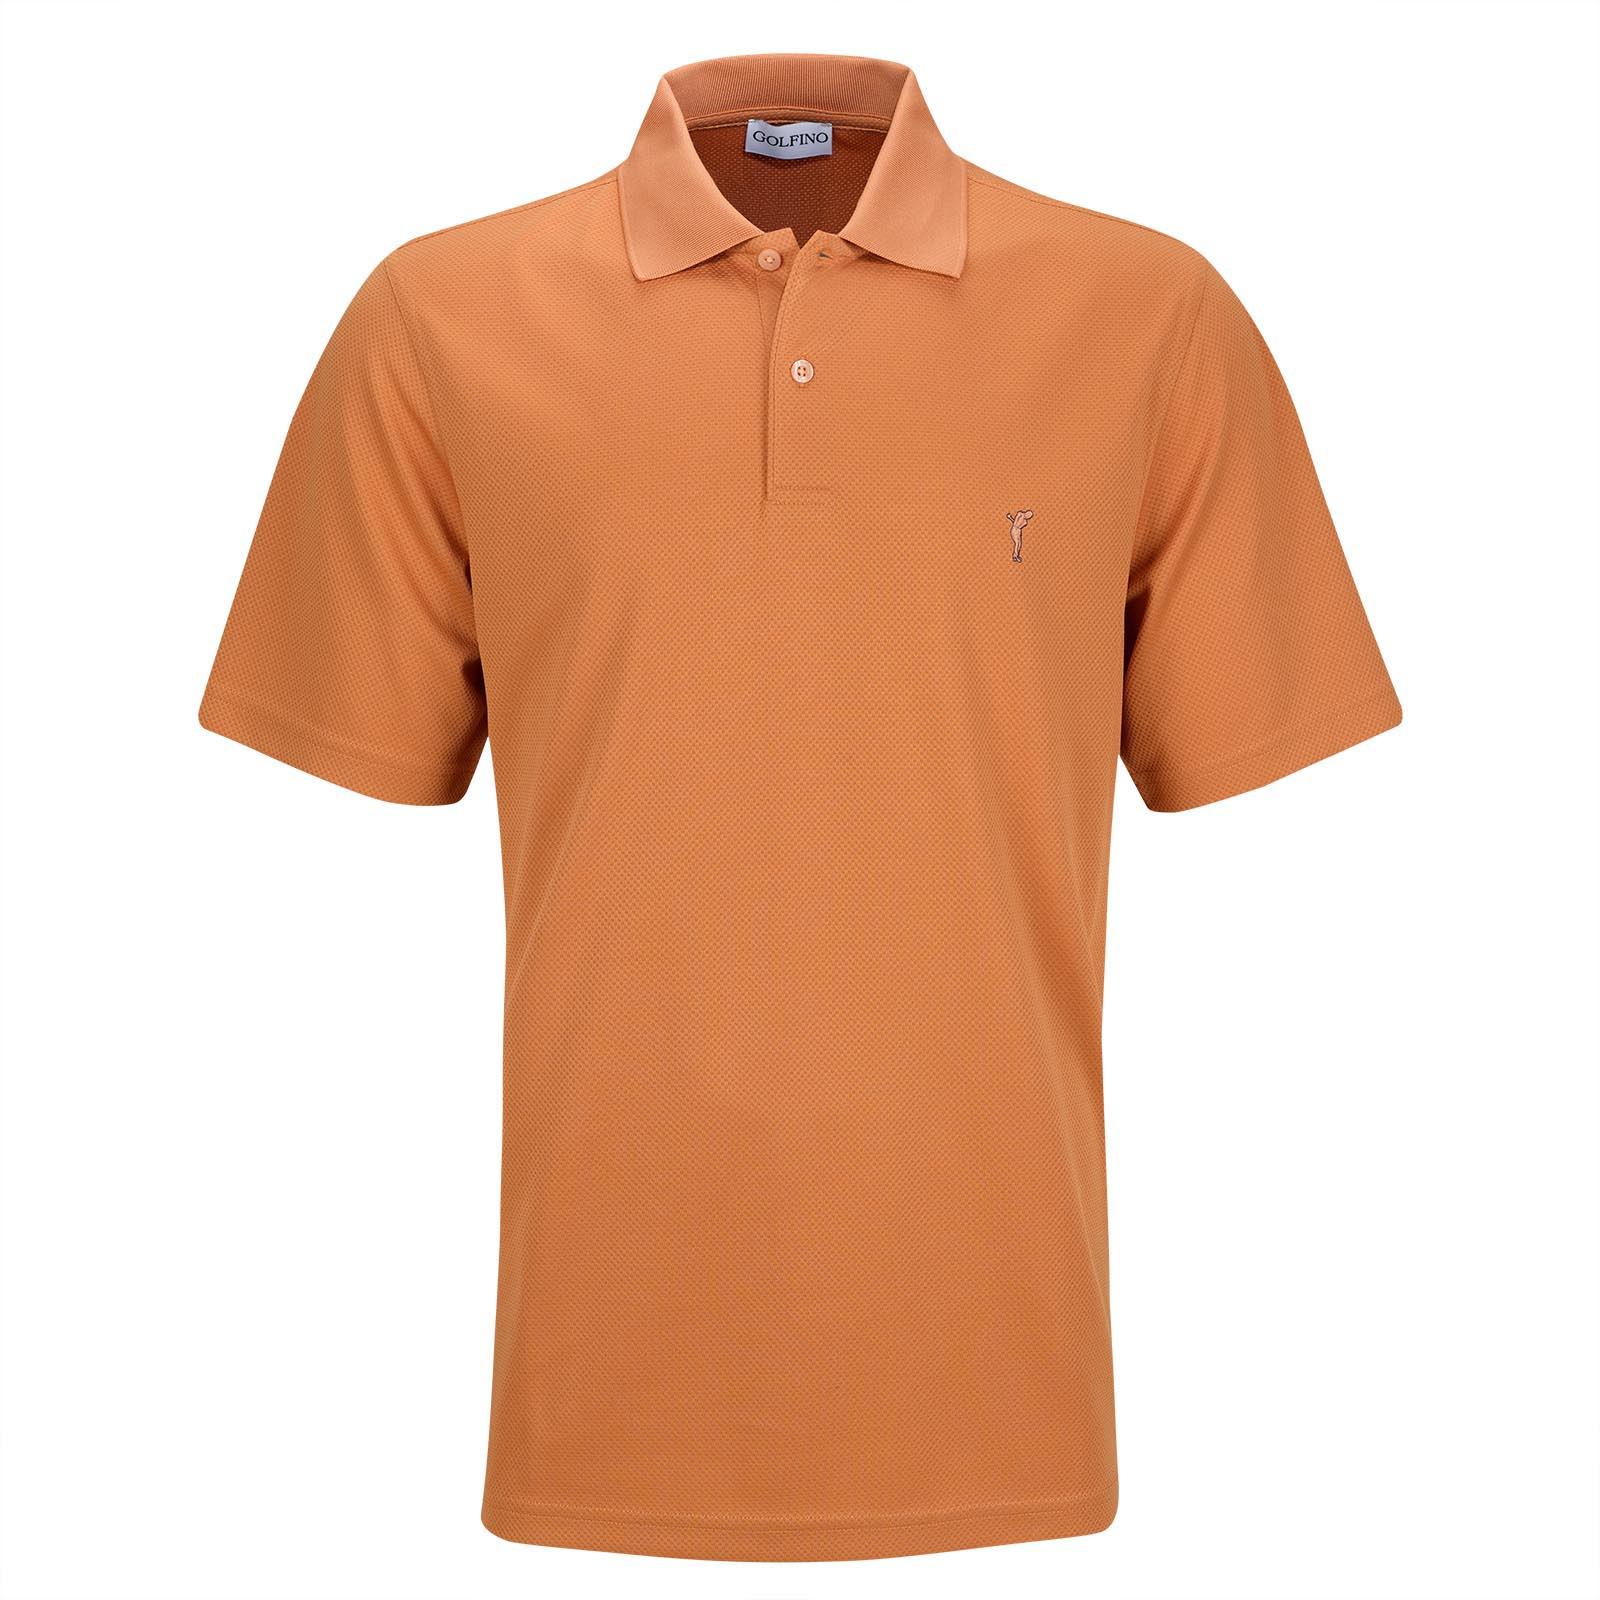 Men's performance wear Kafetex® short sleeve golf polo with moisture management